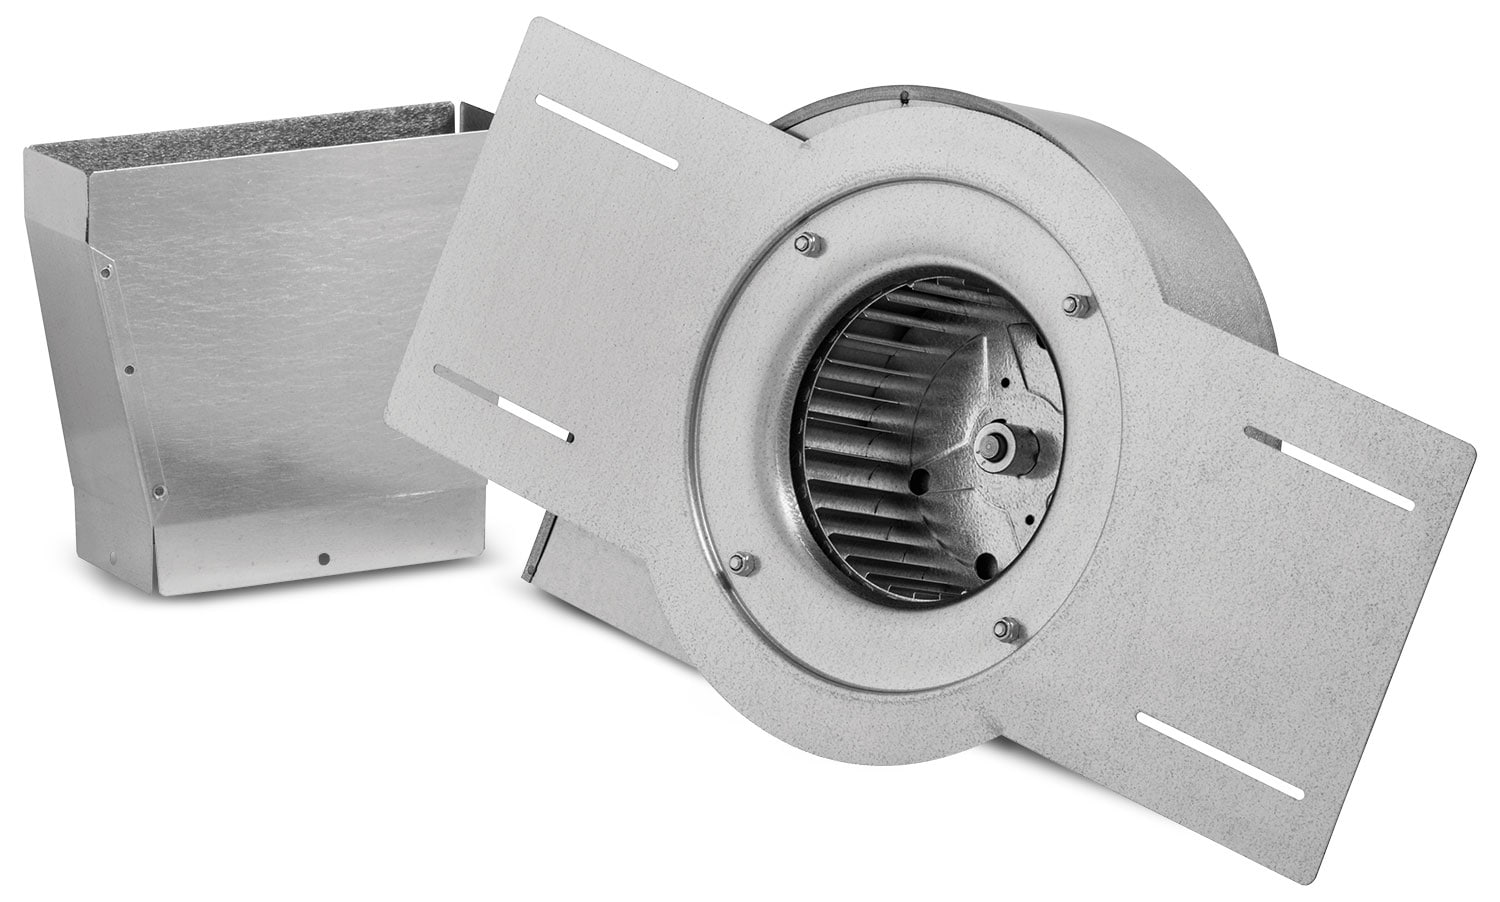 Electrolux 600 CFM Internal Blower for Downdraft Vent System - EI06DDPIKS